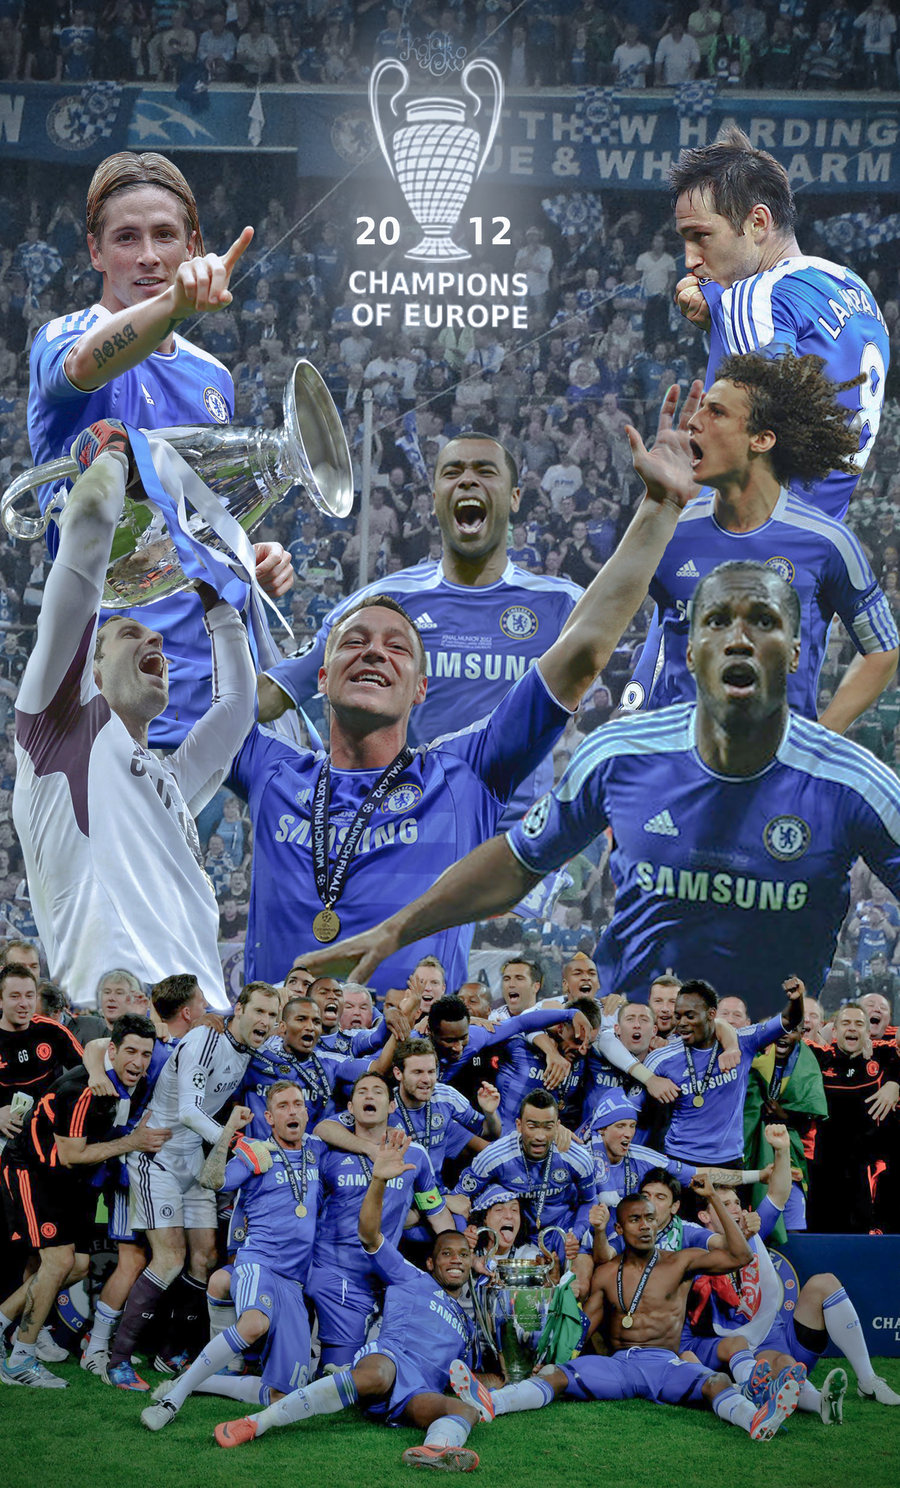 Chelsea FC - Champions of Europe 2012 by KojakoOw on ...